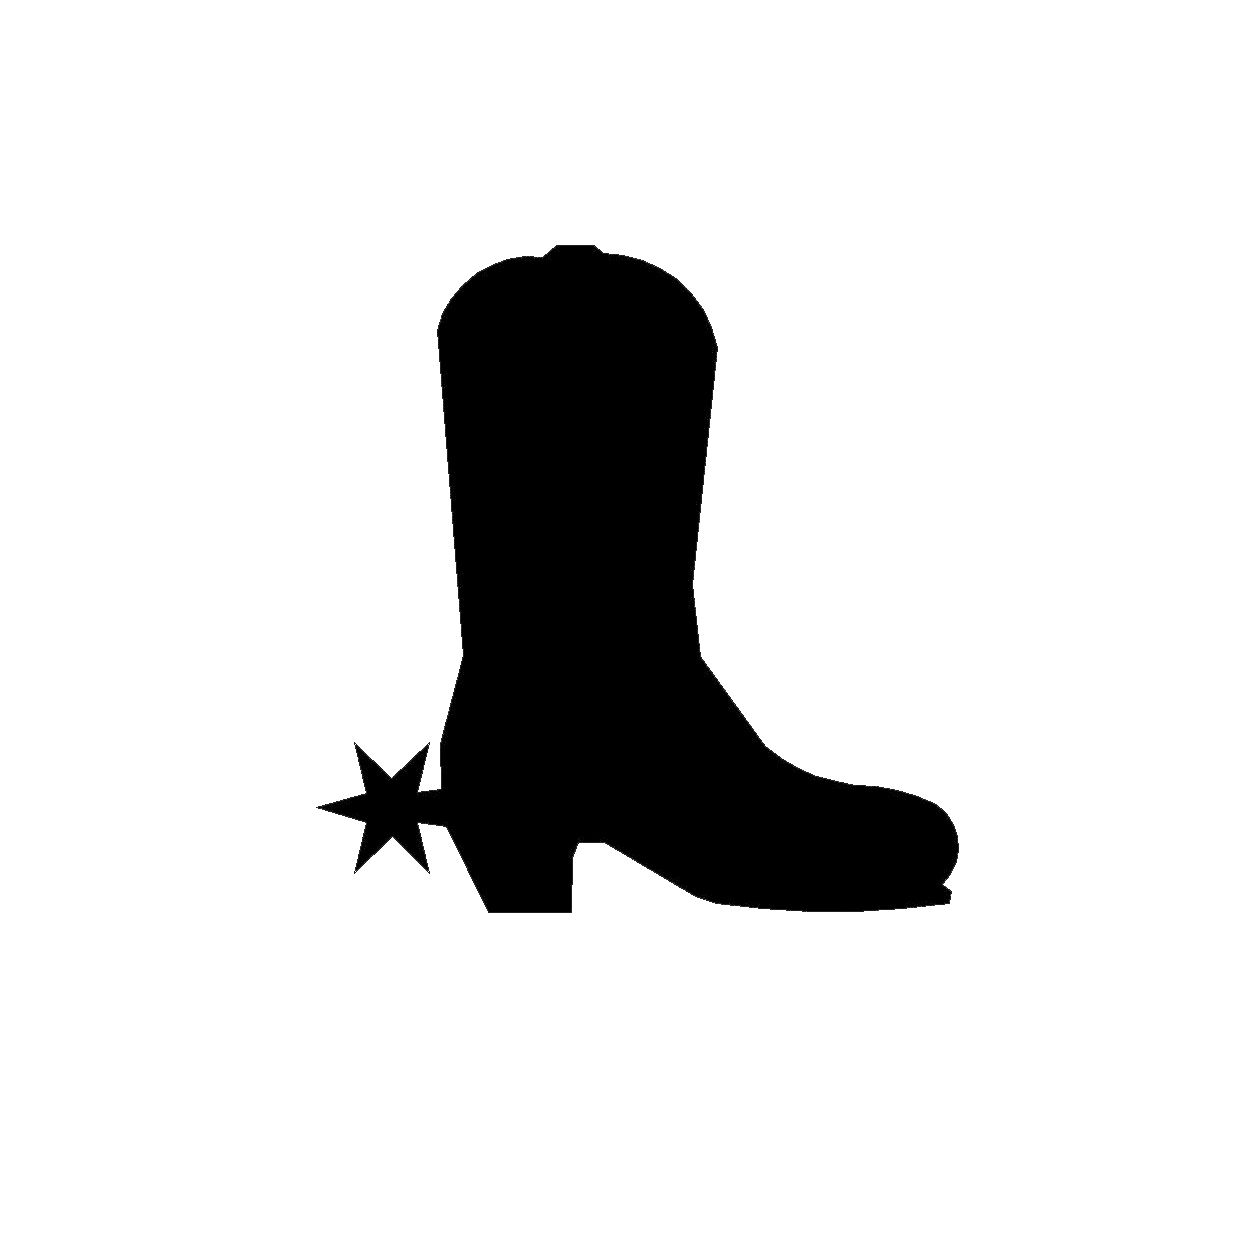 Cowboy boot silhouette clipart clip art library download Pin by Groovy Peacock on DIY ~ Vinyl | Horse silhouette, Cowboy ... clip art library download